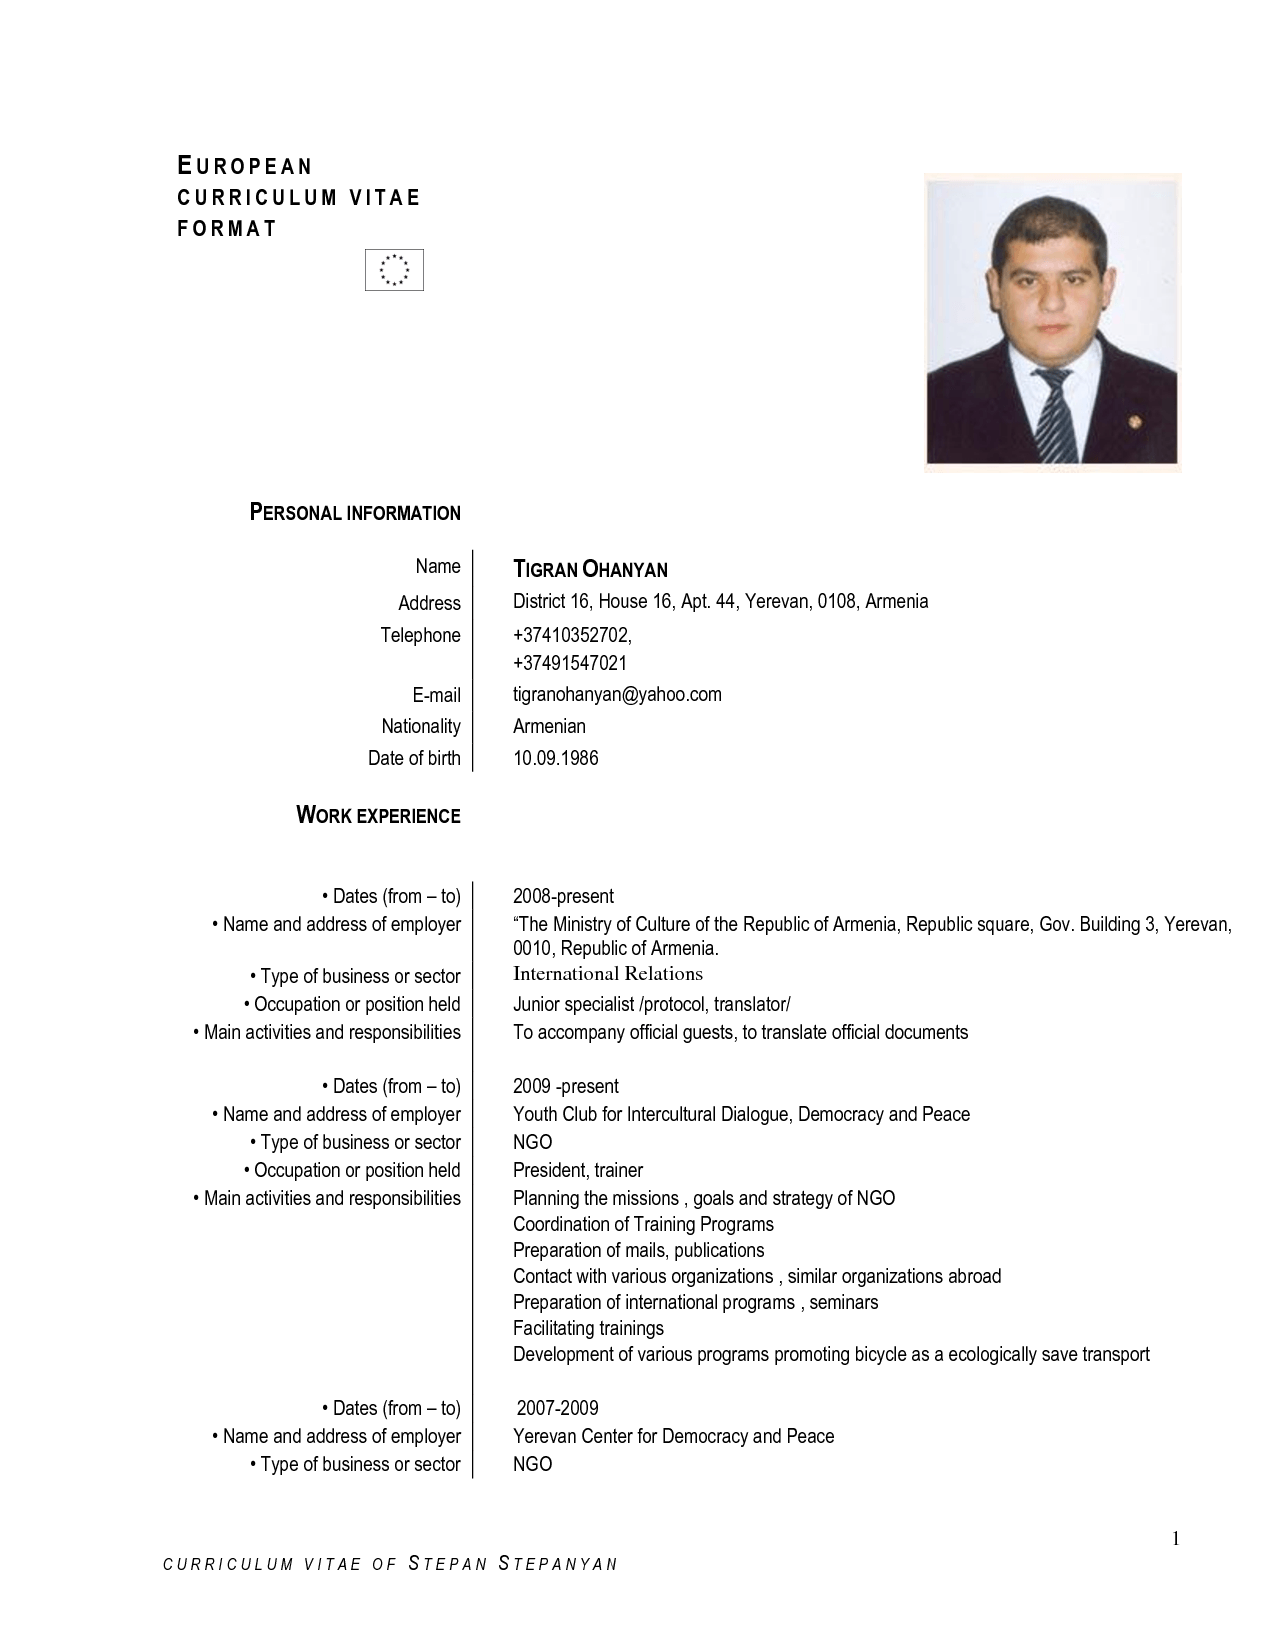 europass cv english doc